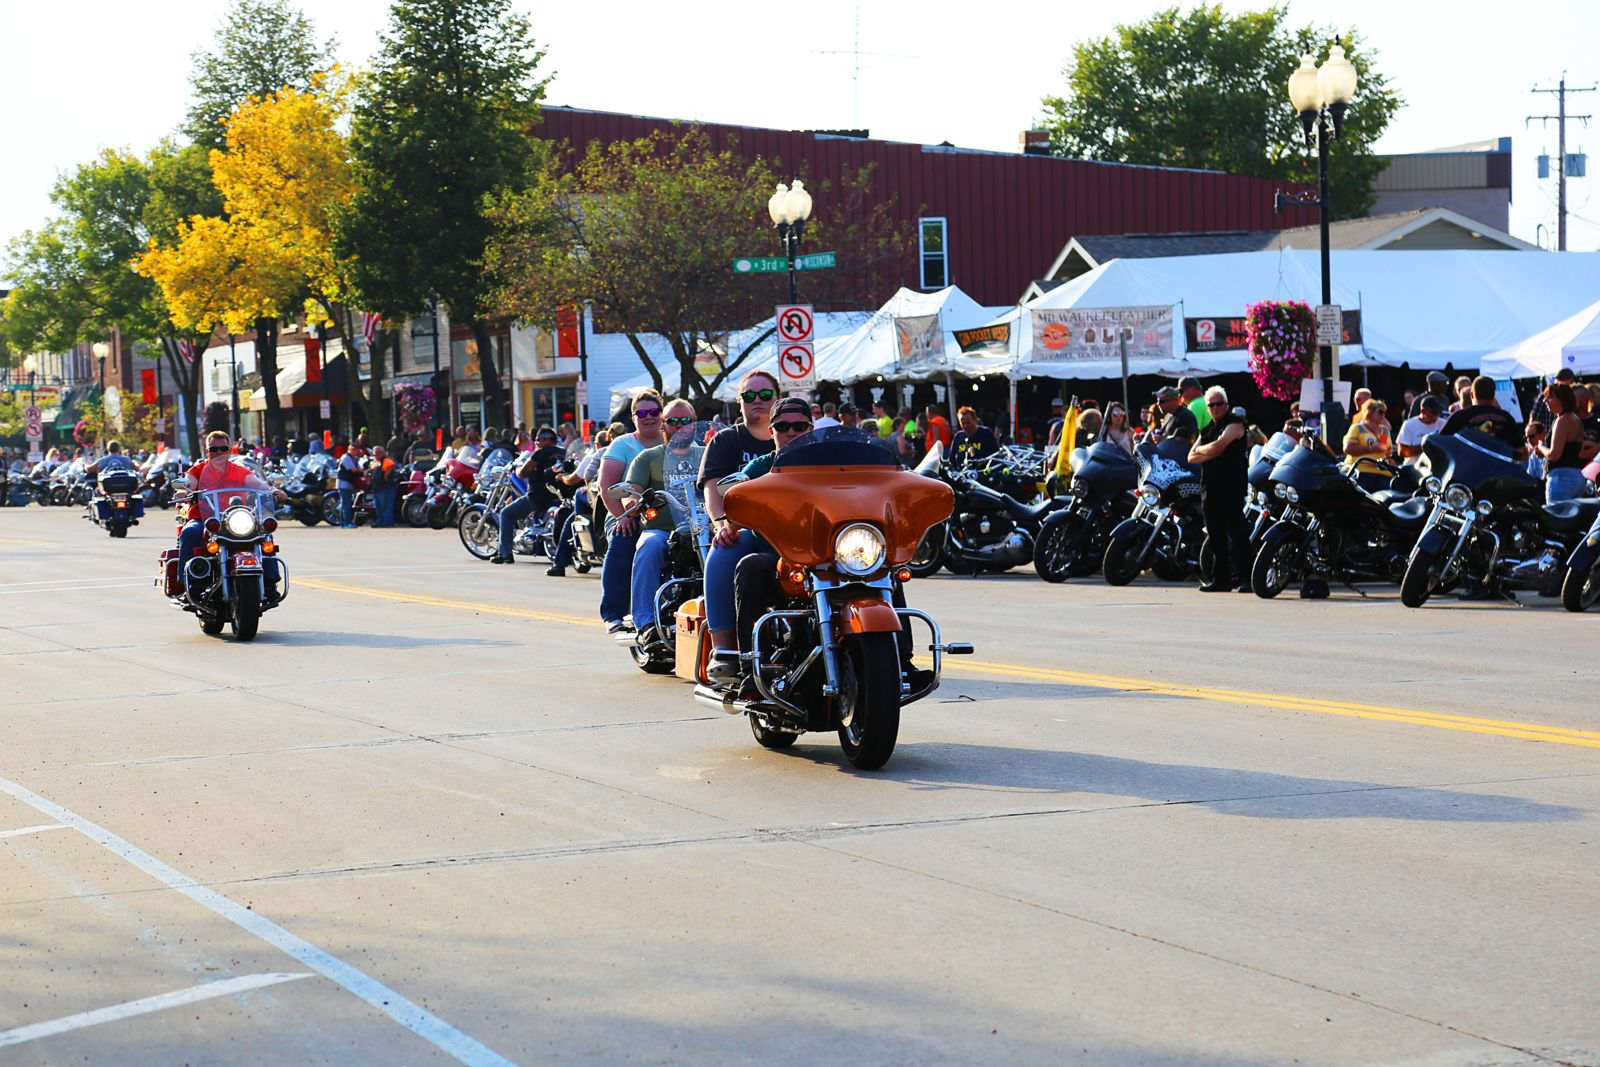 Motorcycle riders at Tomahawk Ride and Rall